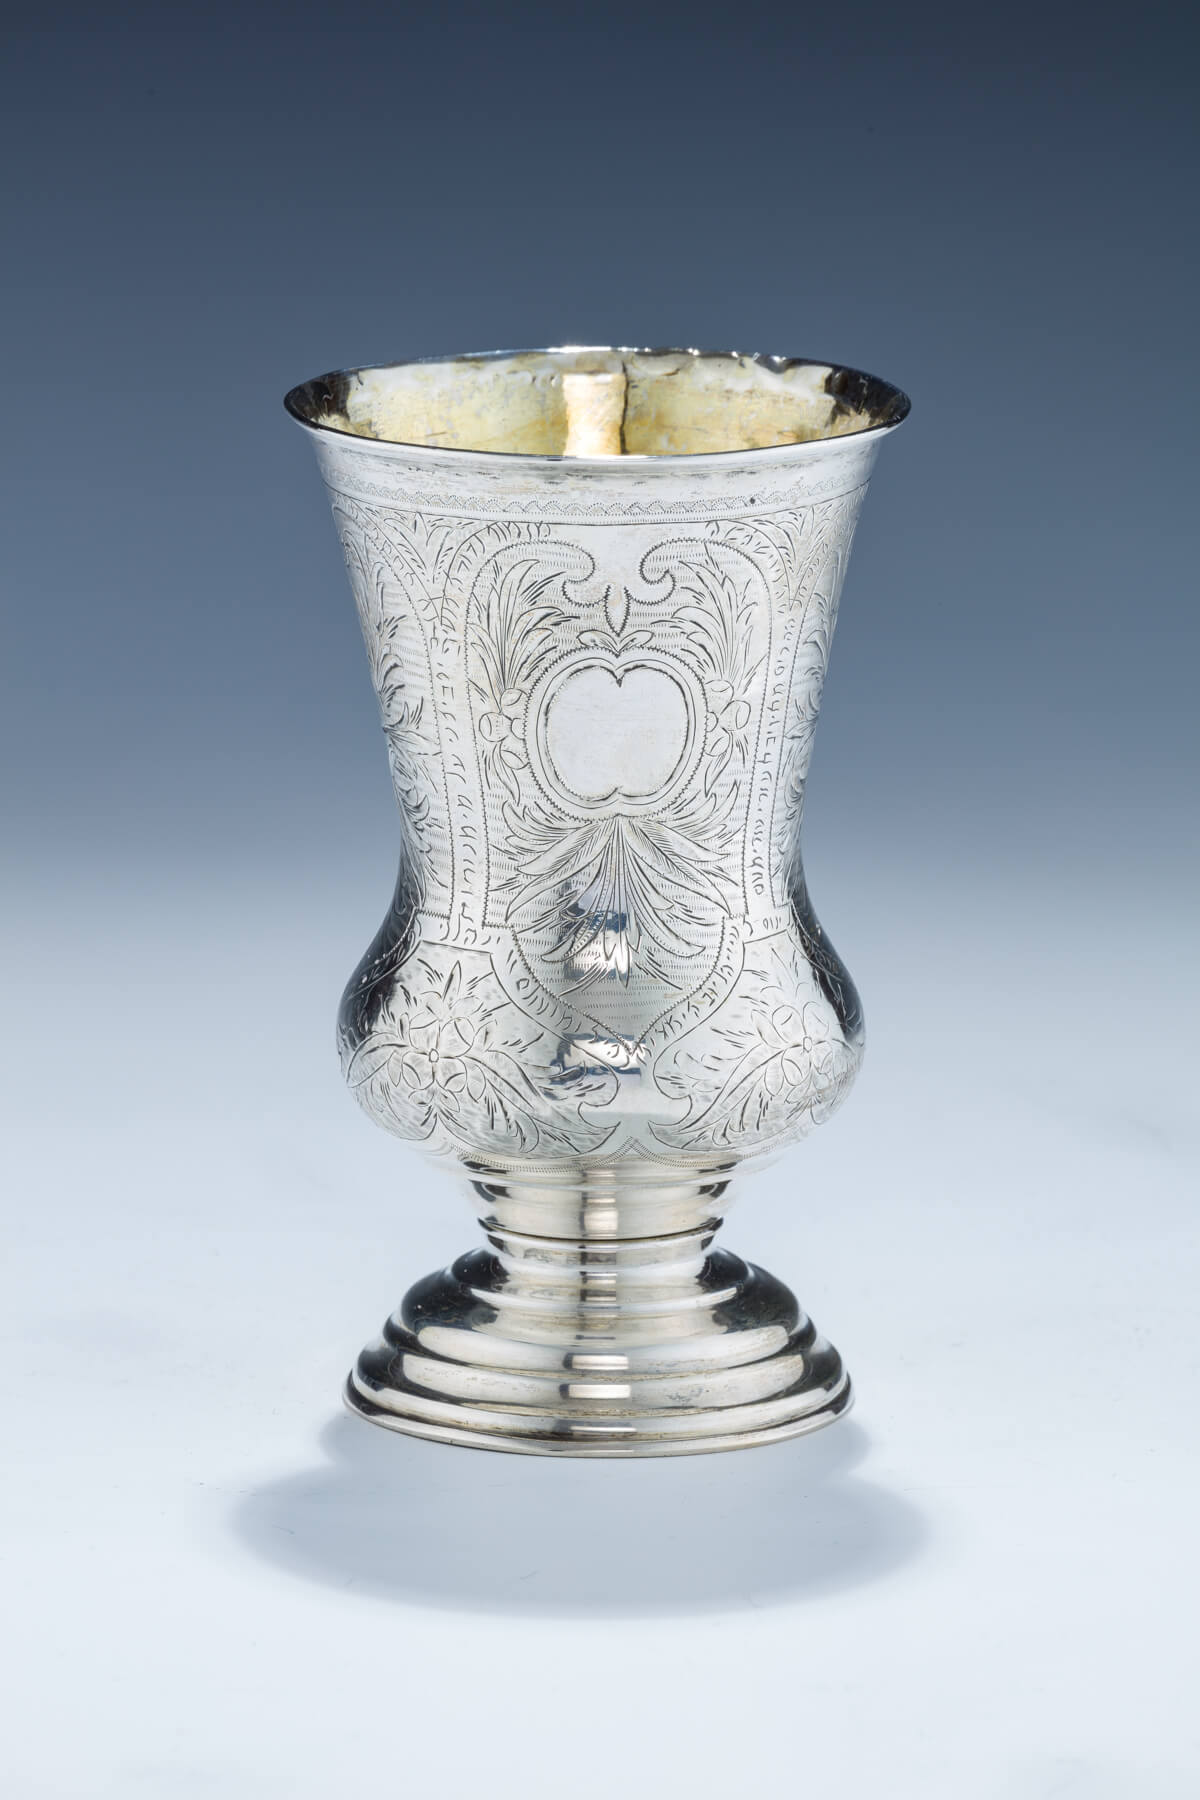 100. A Large Silver Kiddush Goblet